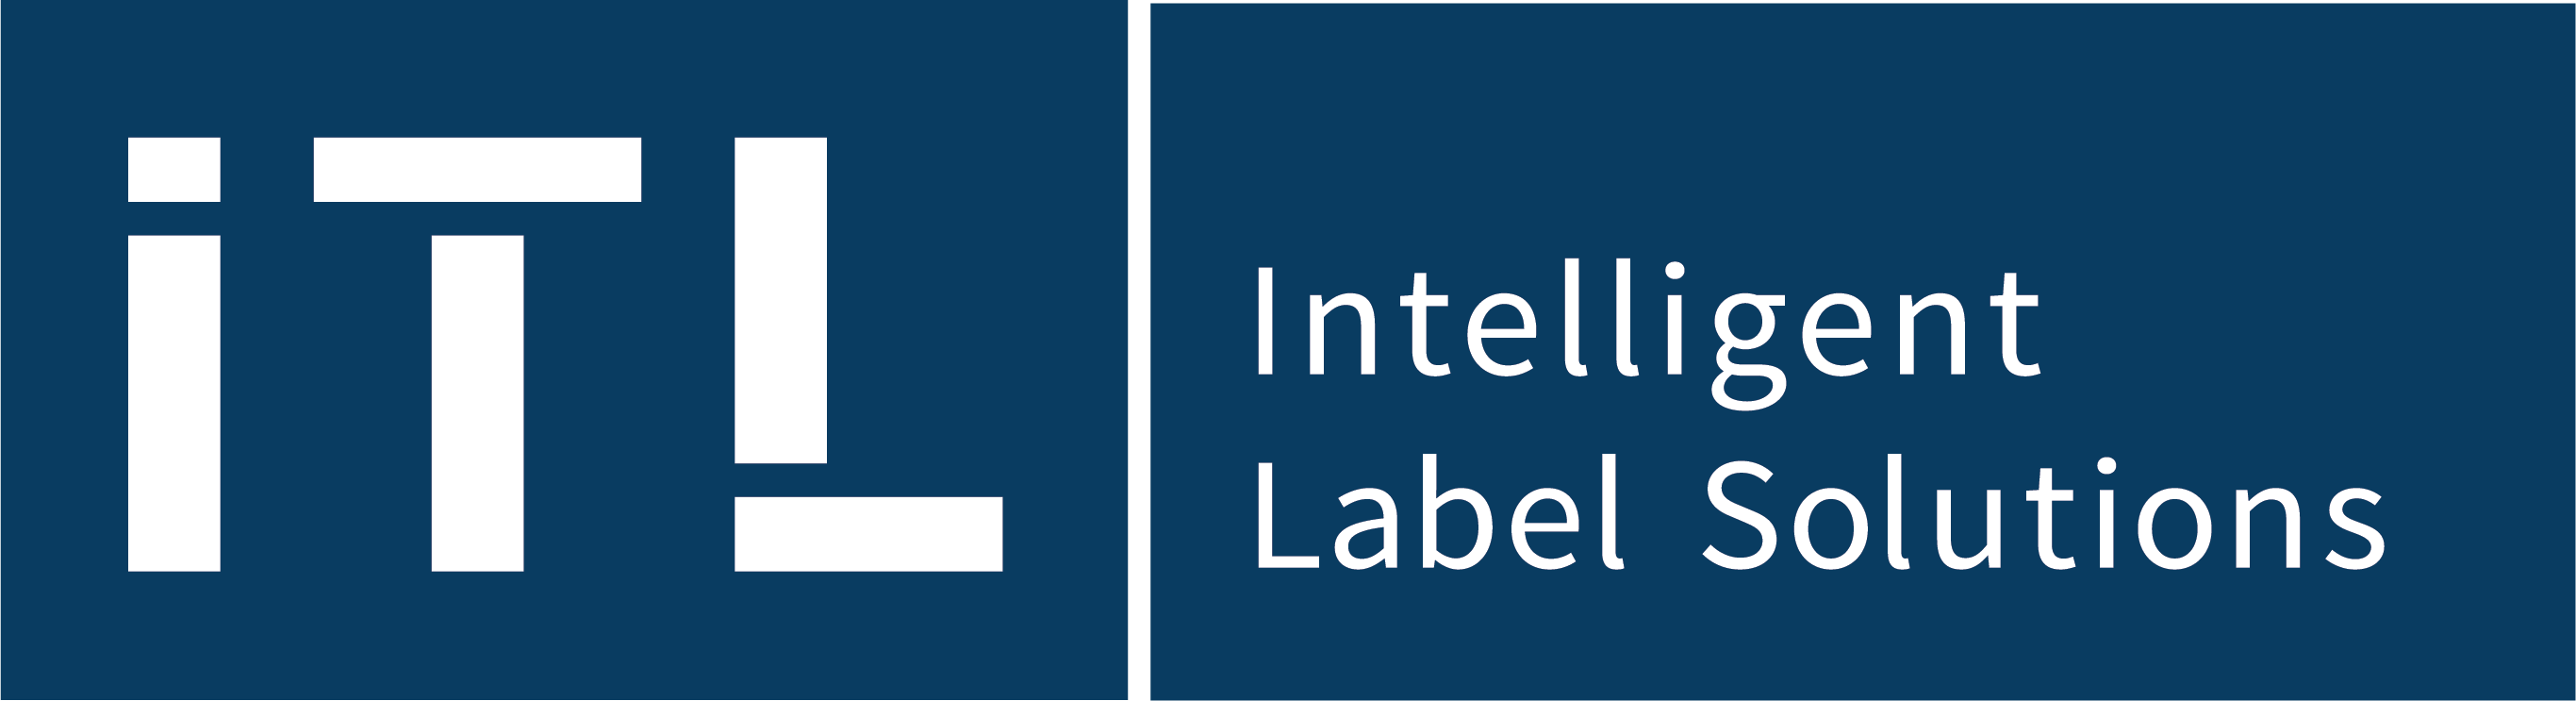 ITL - Intelligent Label Solutions